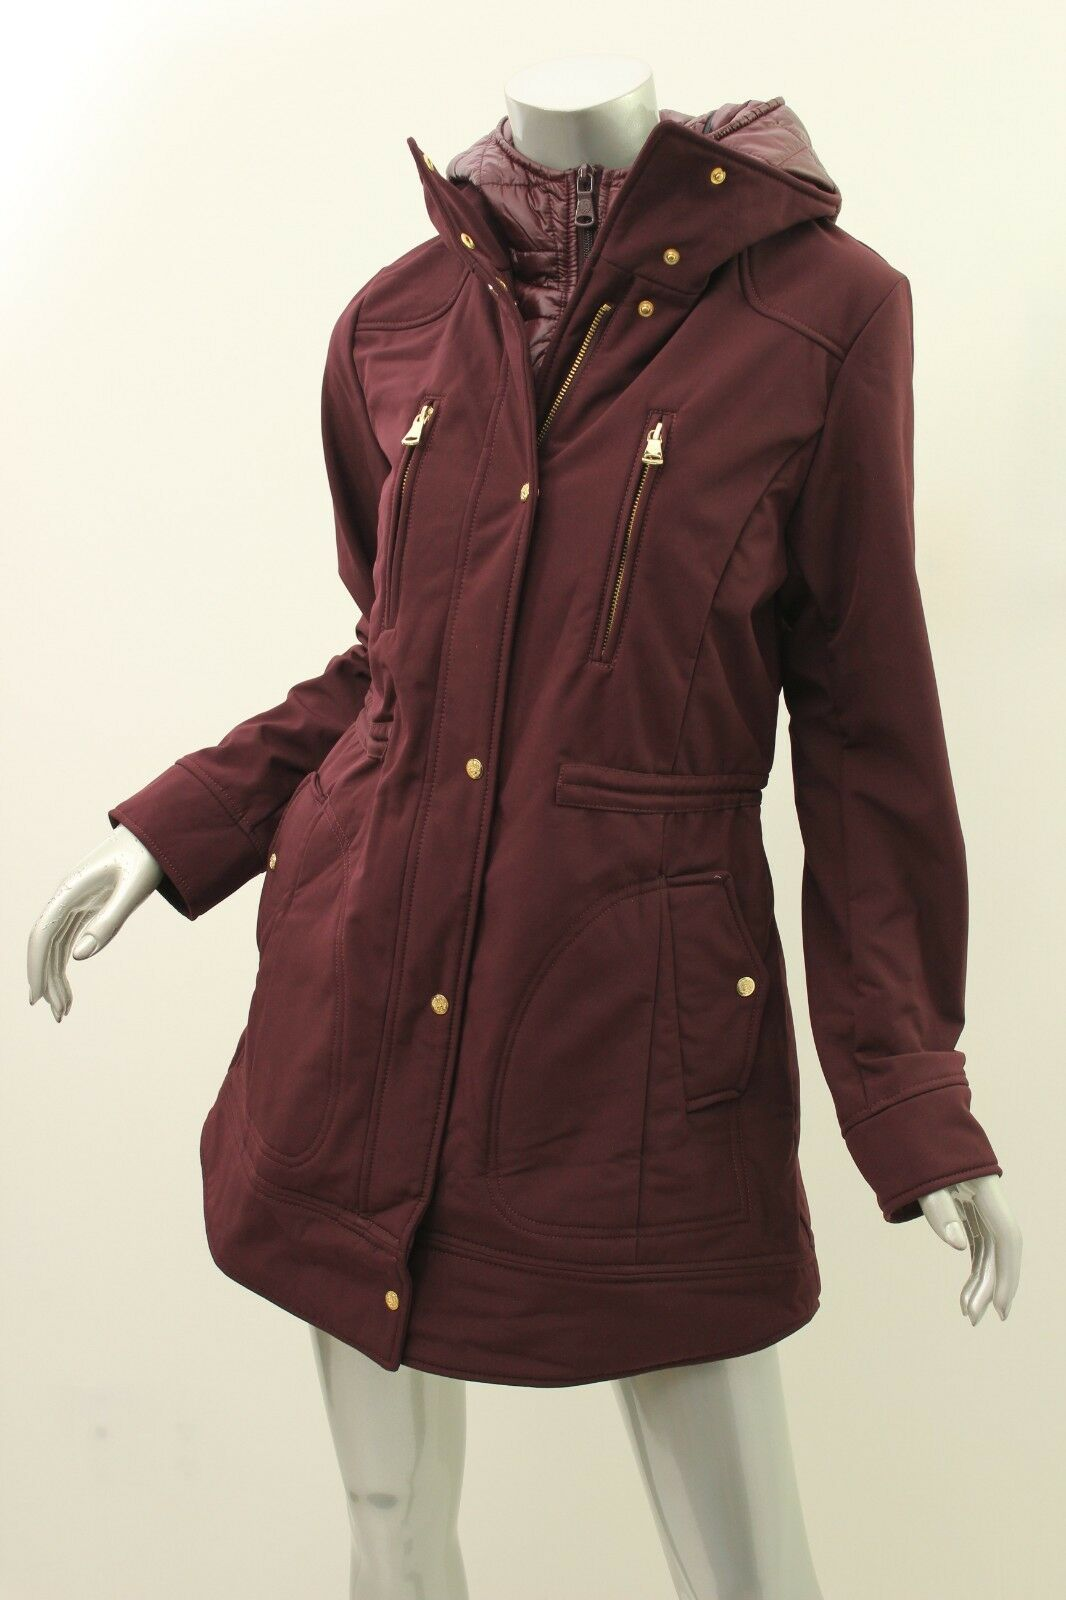 VINCE CAMUTO Burgundy Hooded Quilted Adjustable Coat PS